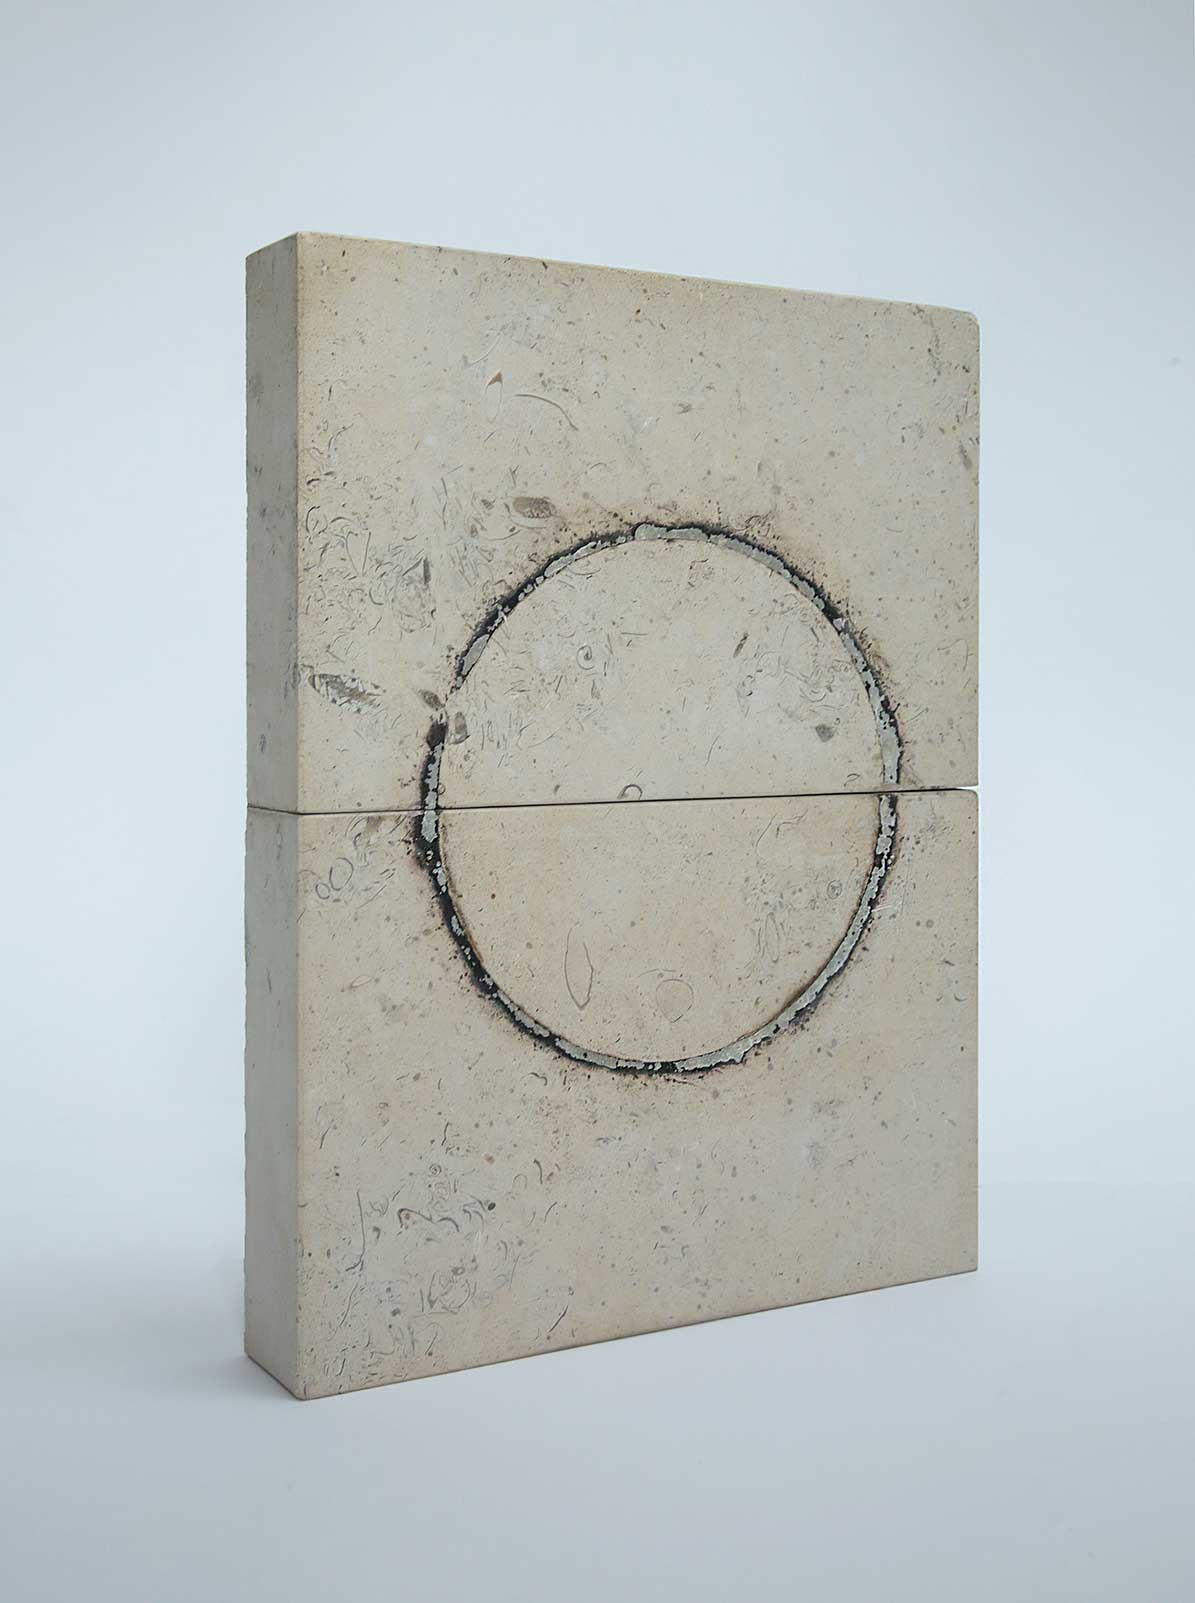 SIX THOUSAND DEGREES    2006  6000º fahrenheit on limestone  35.5 x 27.3 x 5.0 cm